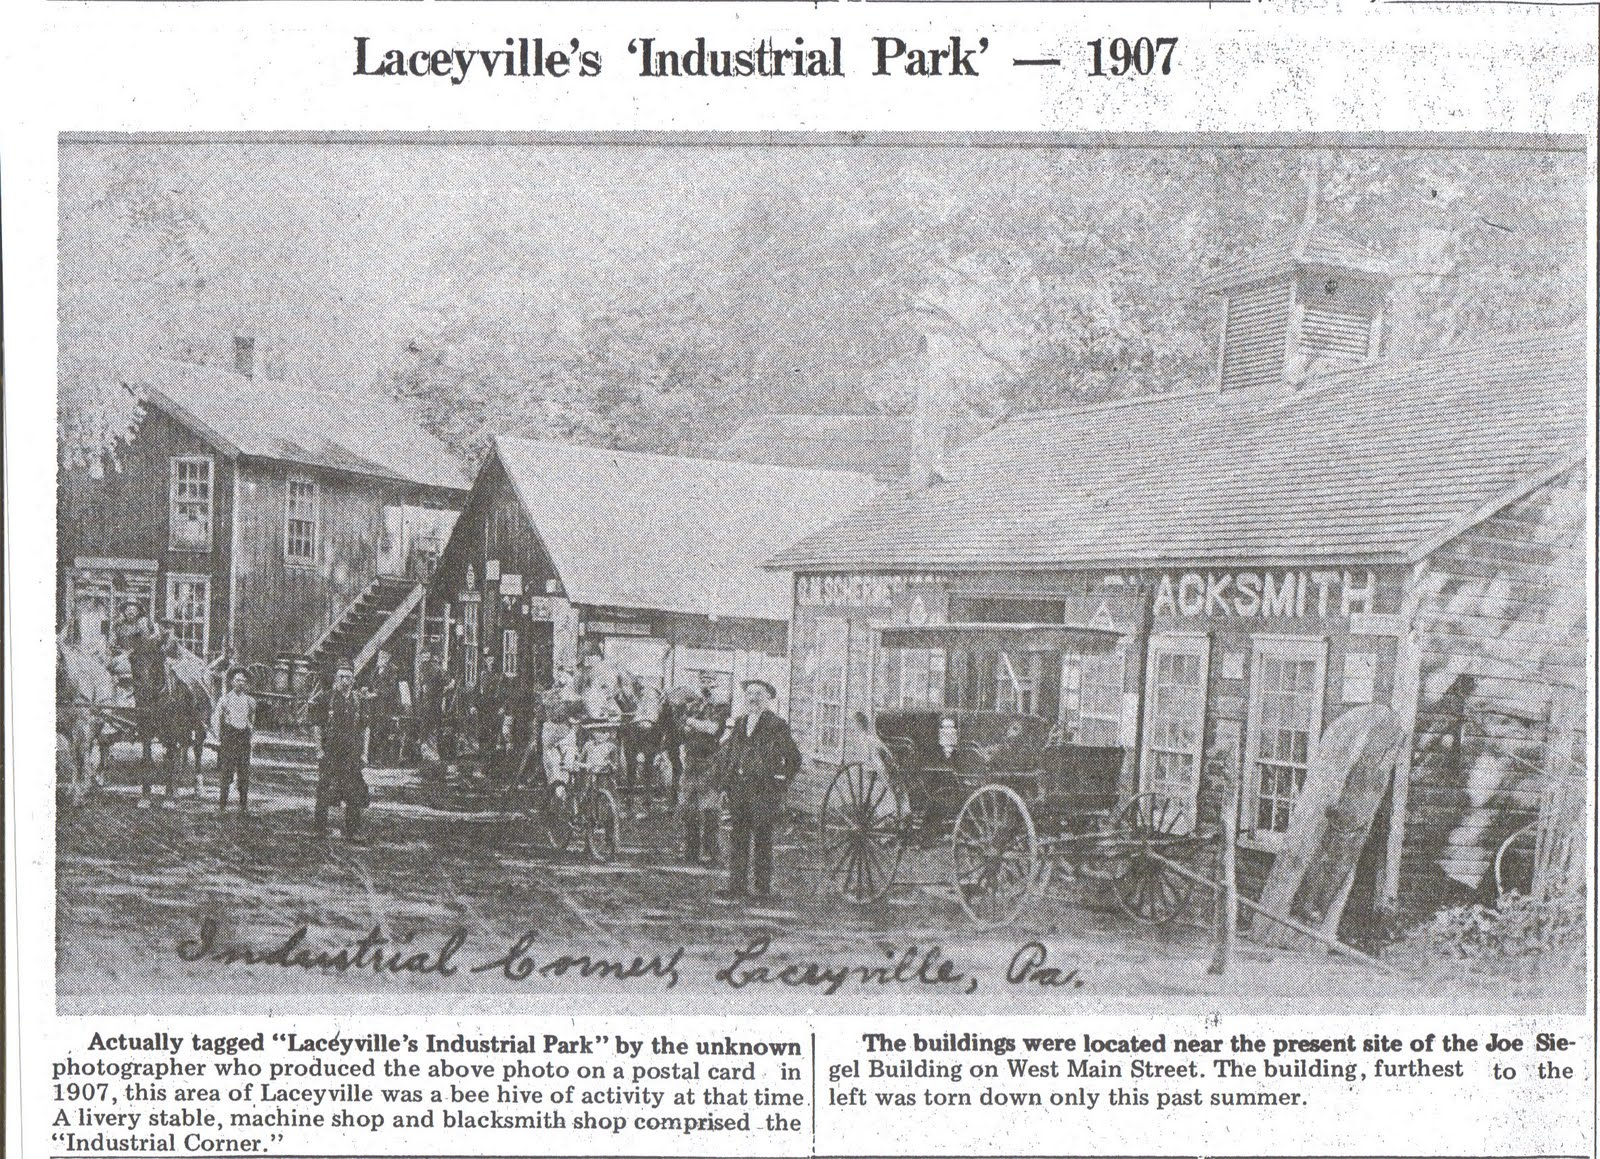 Laceyville Industrial Park